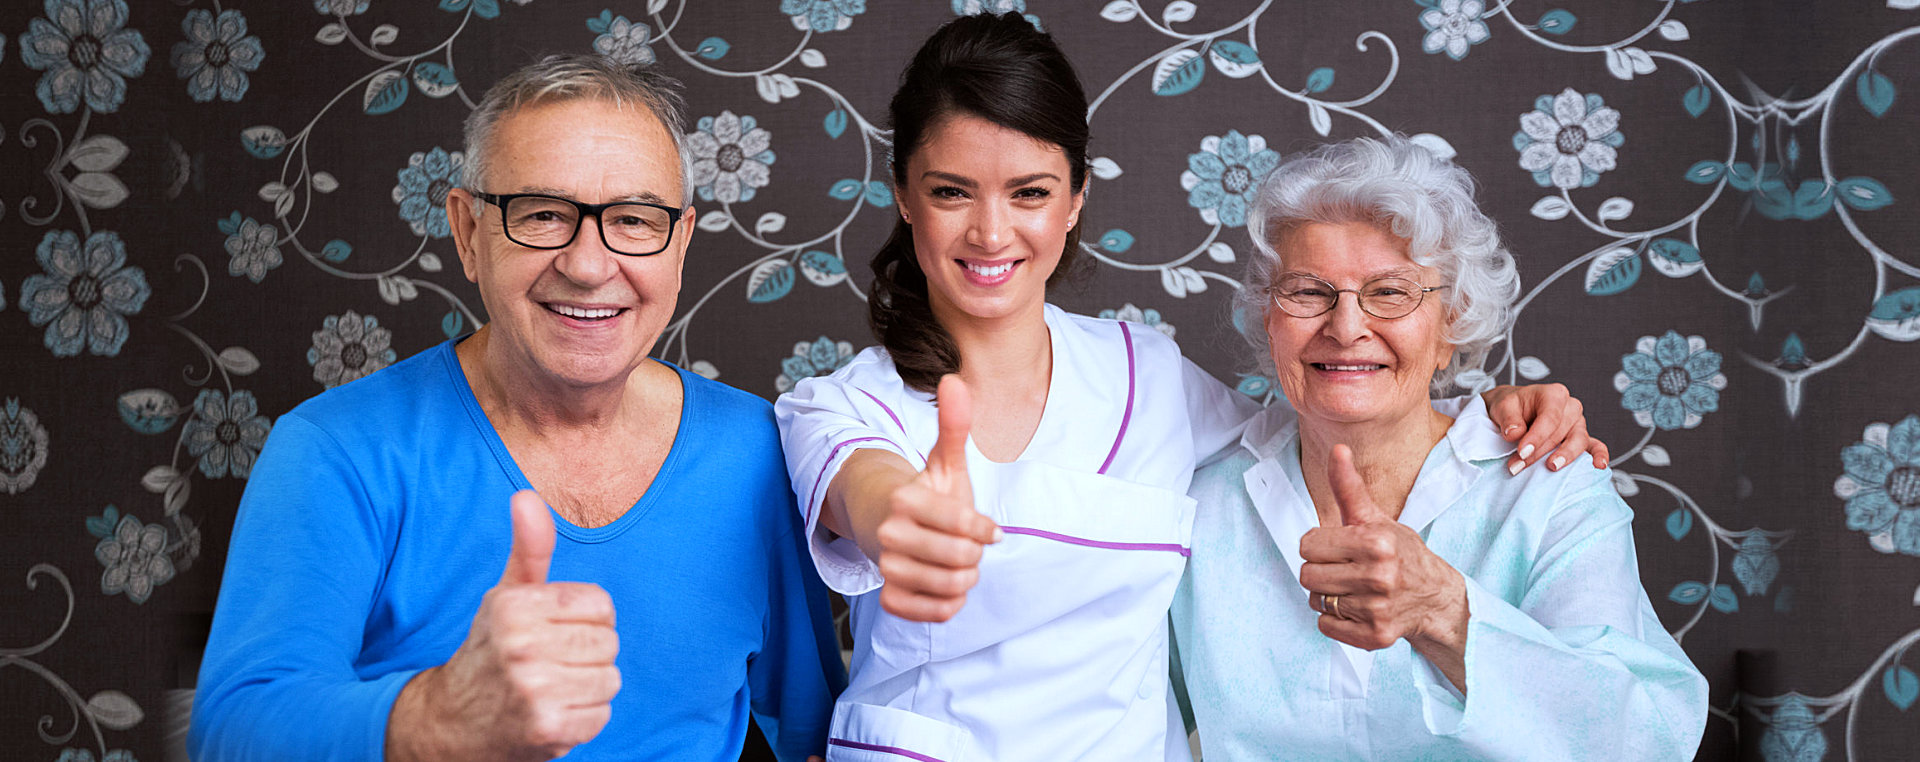 elderly couple and a caregiver doing thumb's up